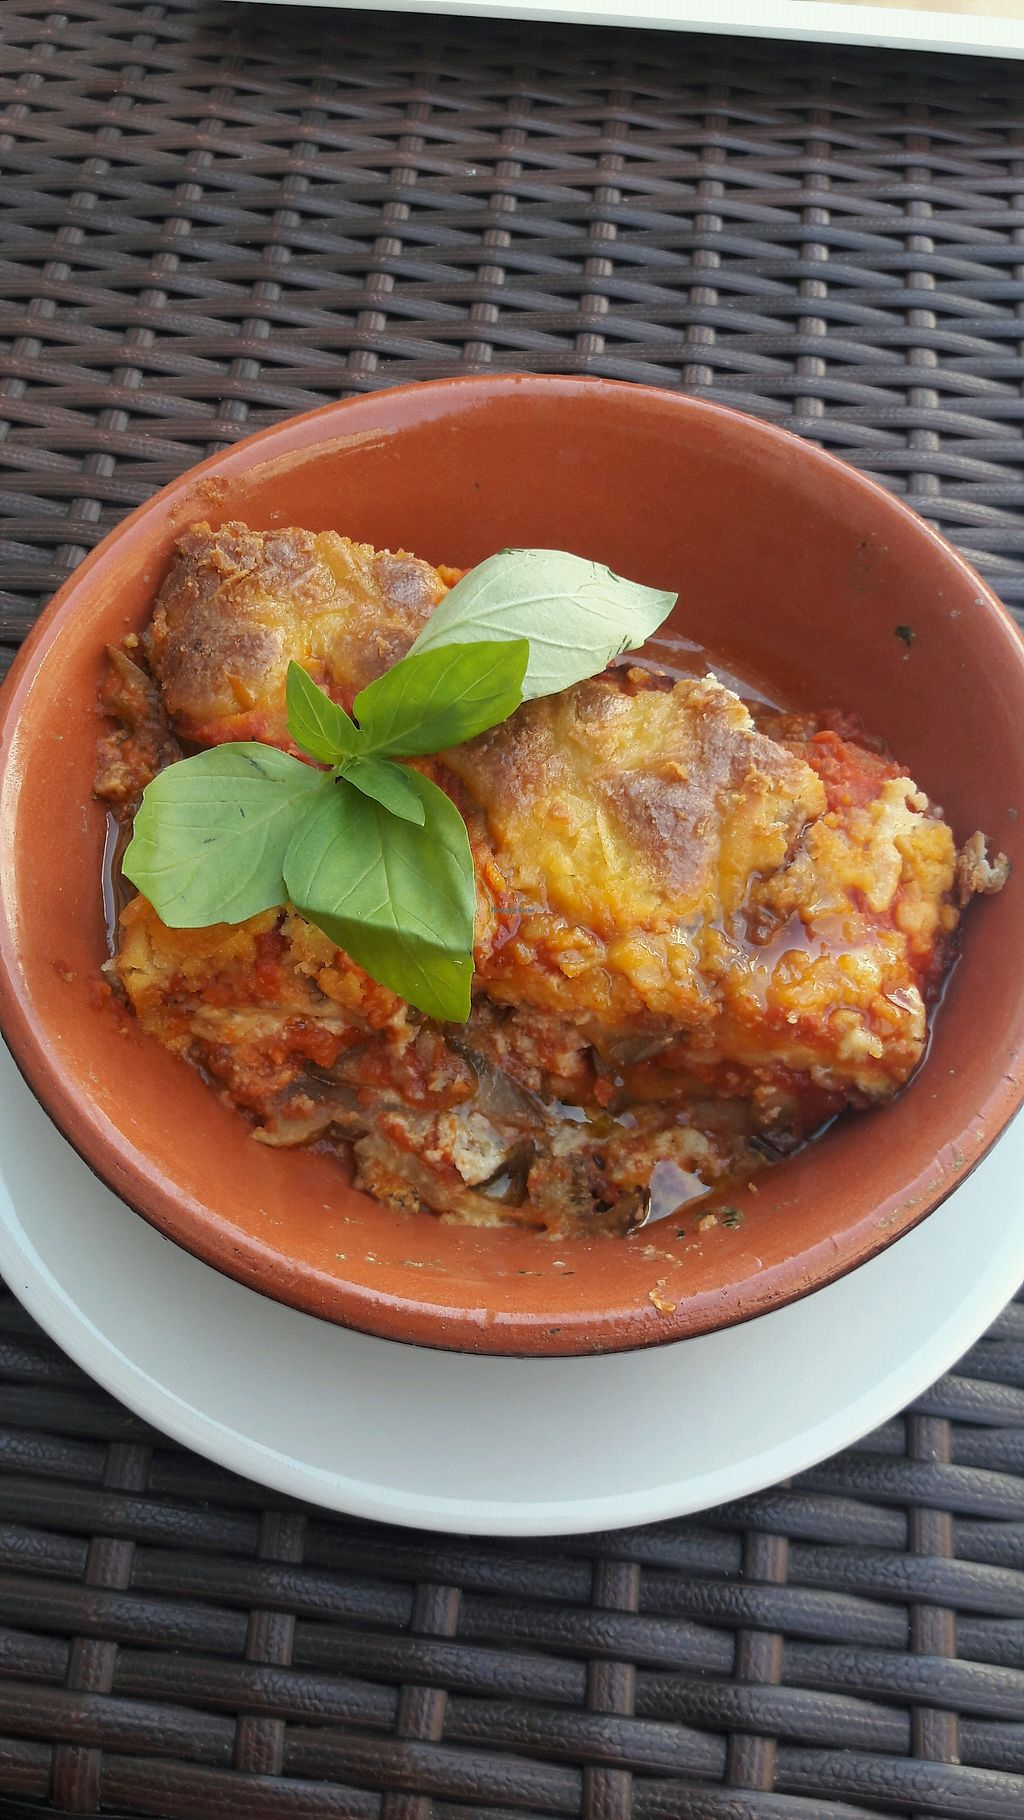 """Photo of MADENITALY  by <a href=""""/members/profile/piffelina"""">piffelina</a> <br/>Melanzane alla parmigiana <br/> April 20, 2018  - <a href='/contact/abuse/image/70650/388693'>Report</a>"""